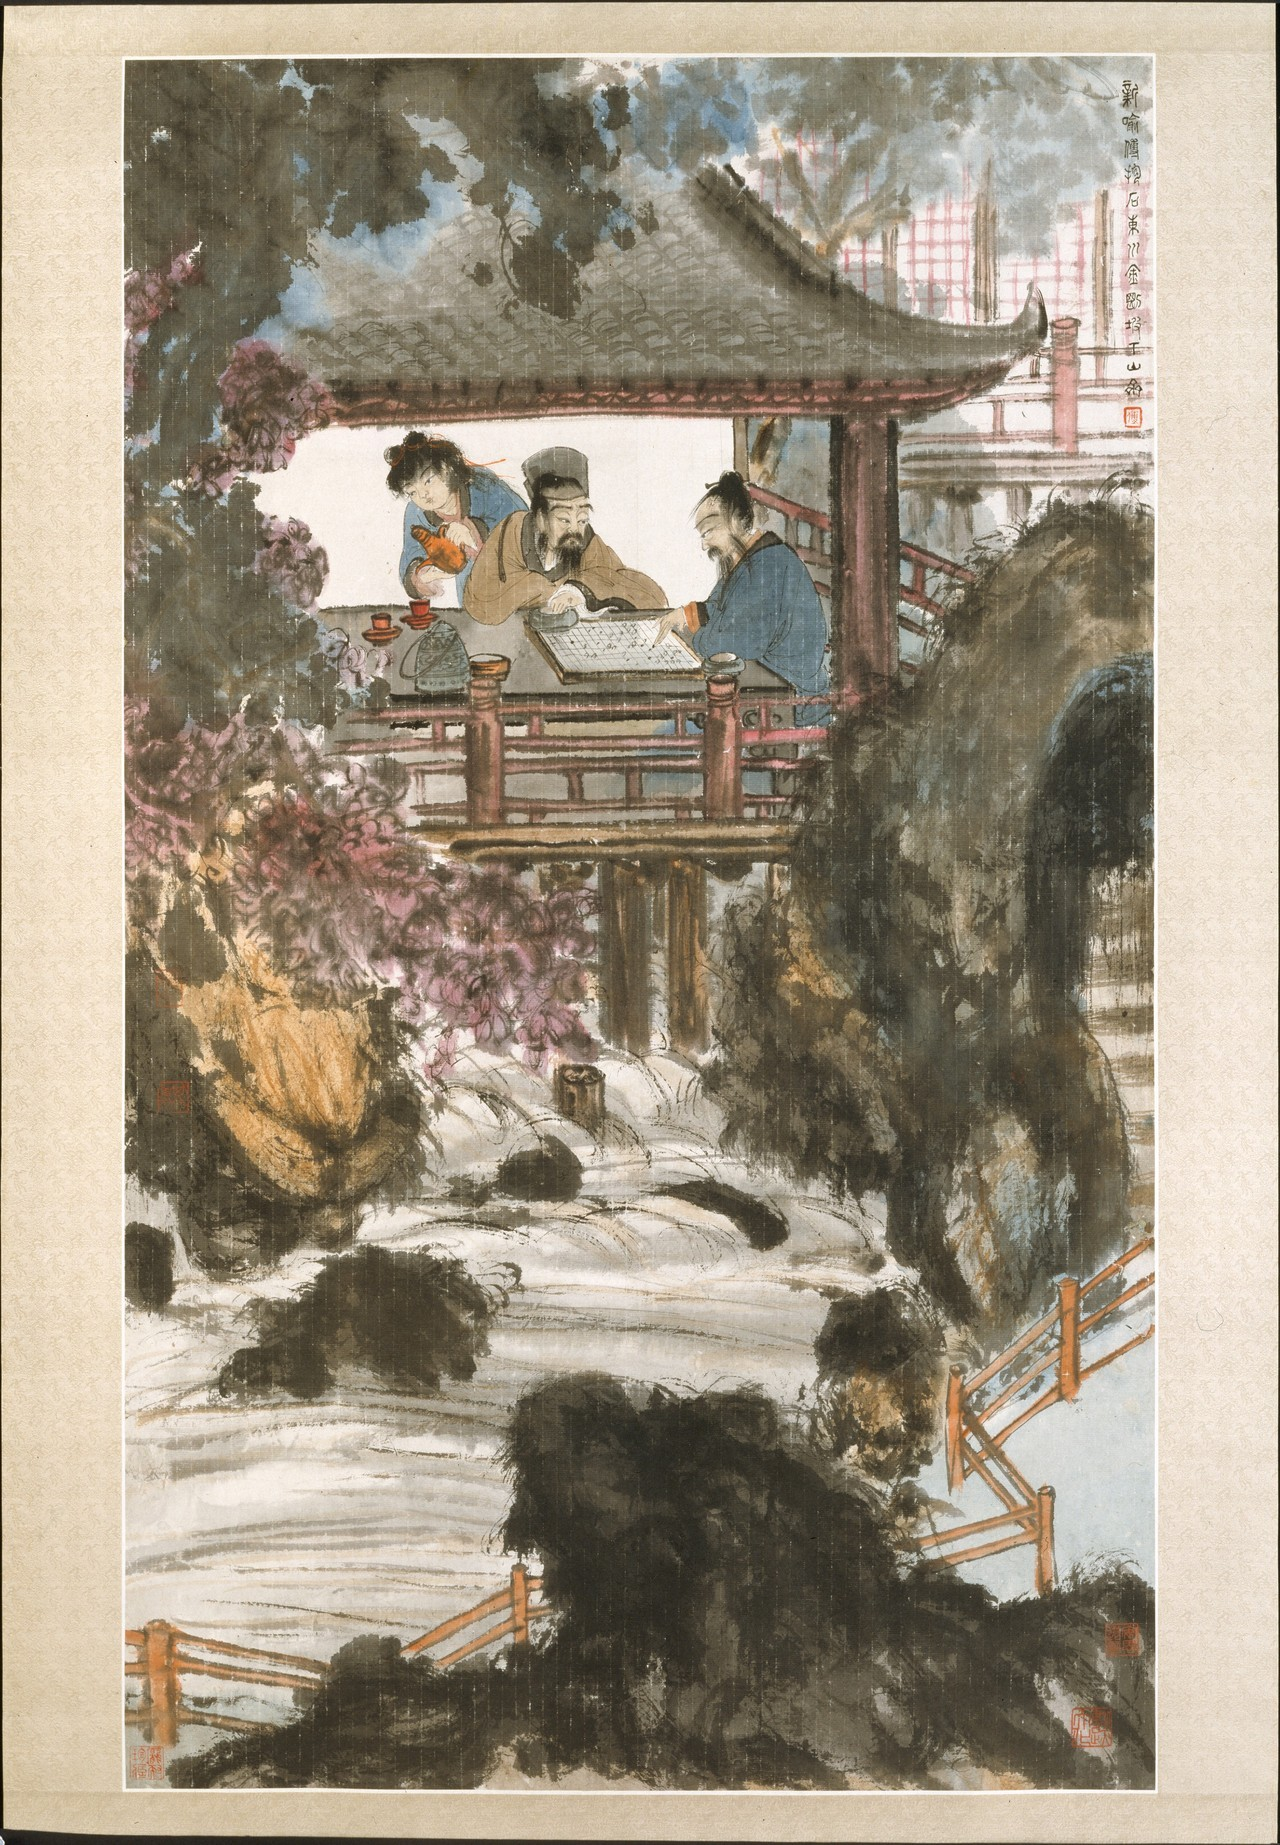 "Fu Baoshi - Playing Weiqi at the Water Pavilion, mid 20th century. Hanging scroll: Ink and colour on Korean paper From the Metropolitan Museum of Art, NYC:  Between 1933 and 1935 Fu Baoshi studied painting in Japan, where he developed notions of a new national painting style based on a fusion of Western realism and traditional brushwork. After his return to China, Fu taught at the National Central University in Nanjing.This large painting was done between 1940 and 1946, when Fu lived in Sichuan. The garden pavilion buttressed by powerful rocks next to a rushing stream may refer to Fu's personal retreat as identified in his inscription: ""The Mountain Studio at the foot of Mount Jin'gang in Eastern Sichuan."" It may also be understood as a metaphor for China's enduring culture. The two scholars at weiqi (go, in Japanese) recall the four traditional accomplishments of the gentleman-weiqi, playing the zither, calligraphy, and painting-but they may also allude to China's history of military strategy.The composition, framed top and bottom by forms rendered in saturated daubs of black ink, presents a shallow space packed with richly colored garden elements. Only the freestanding screen in the pavilion remains unpainted, serving as a bold accent that throws the figures into high relief, accentuating the stagelike drama. Fu's combination of Chinese and foreign painting methods is evident in his treatment of the stream, which is delineated with dry-brush contours and alternating passages of wash and uninked paper that suggest the play of sunlight across the surface-a treatment borrowed from Western watercolor techniques."